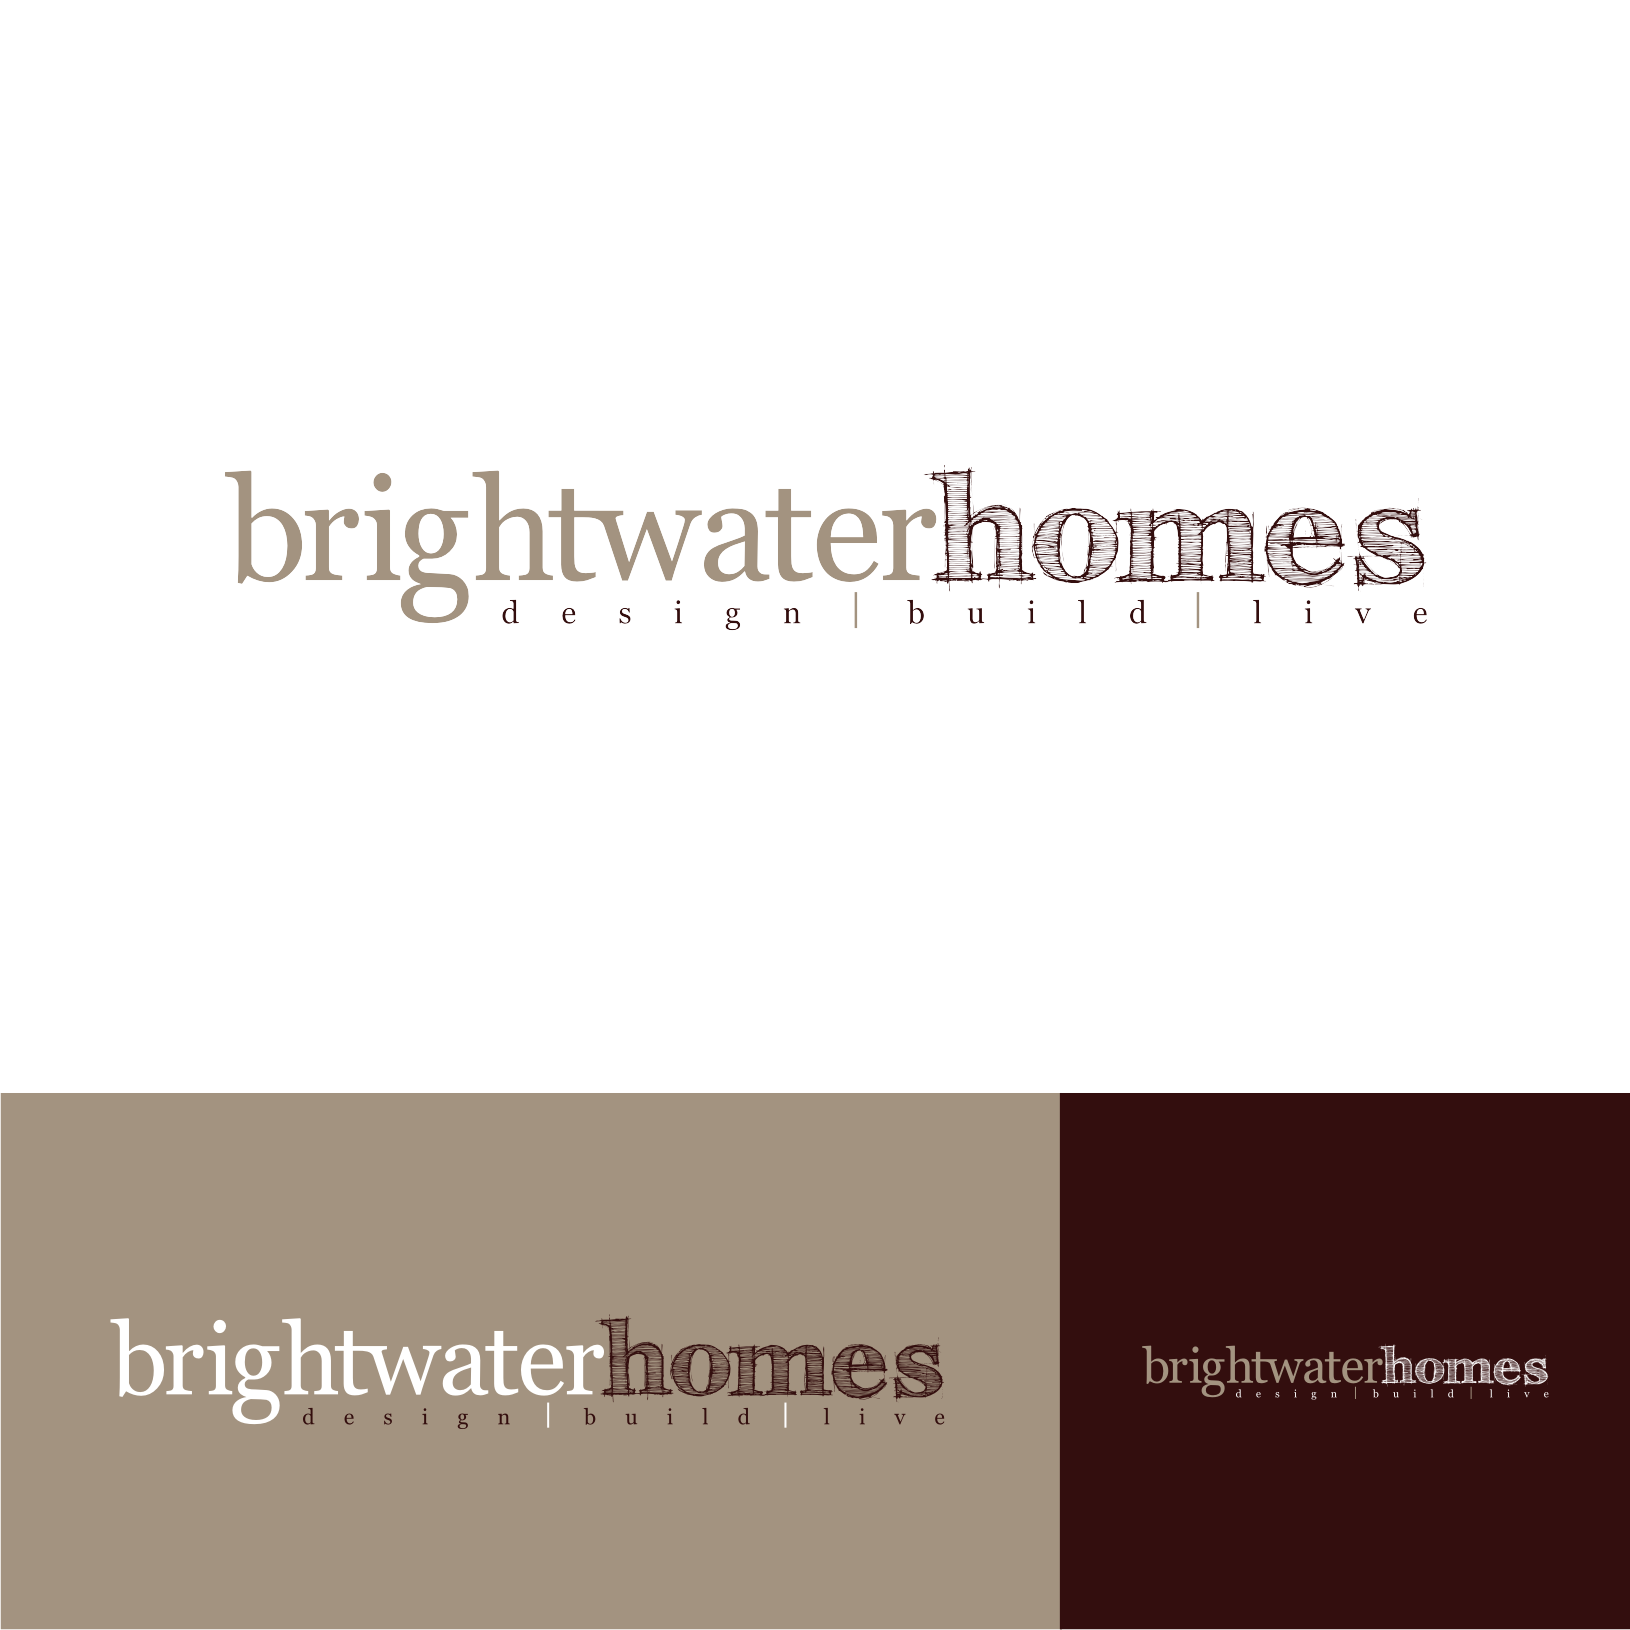 Brightwater Homes - We love great design (and great designers!)